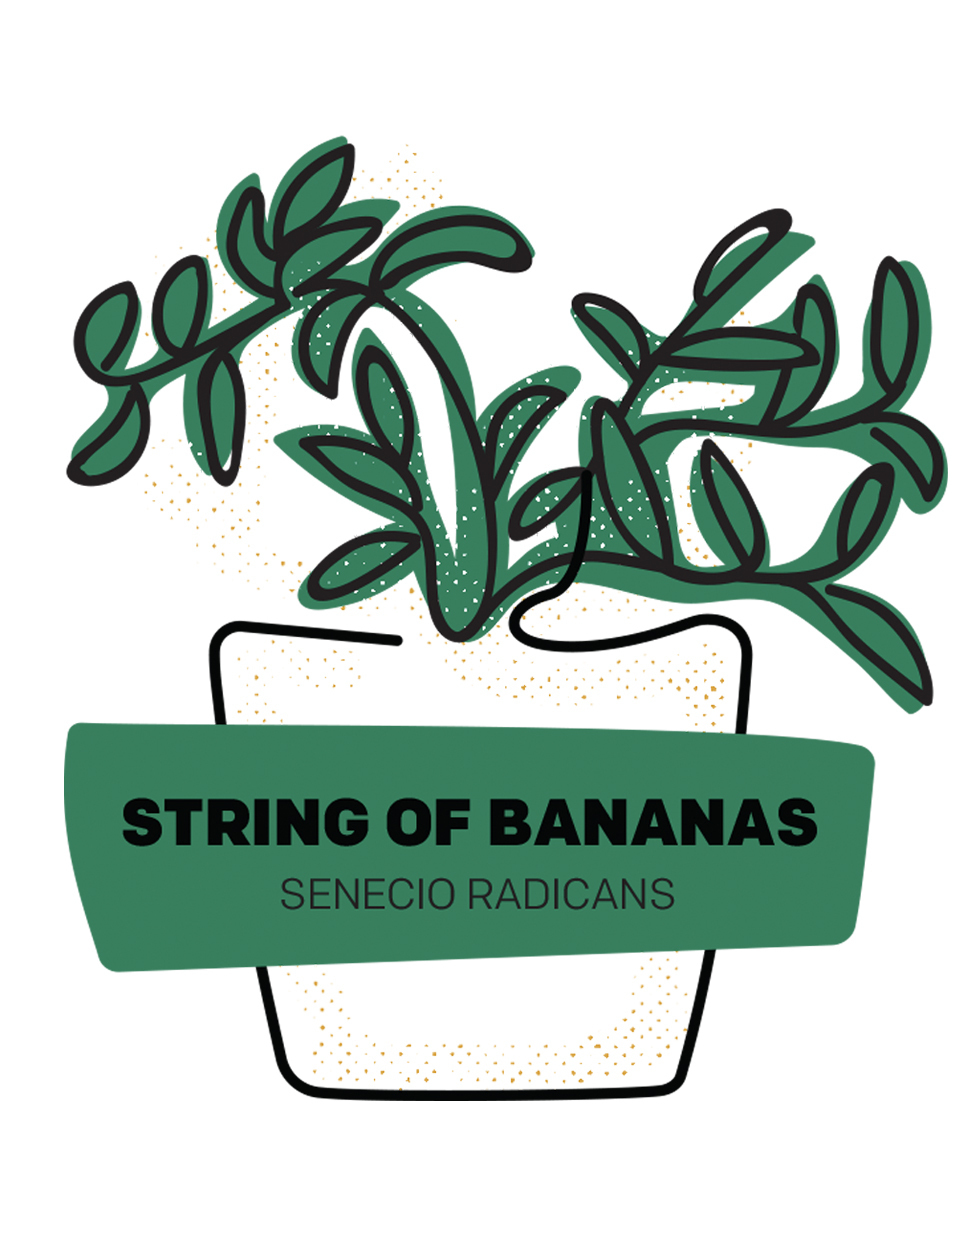 String of Bananas